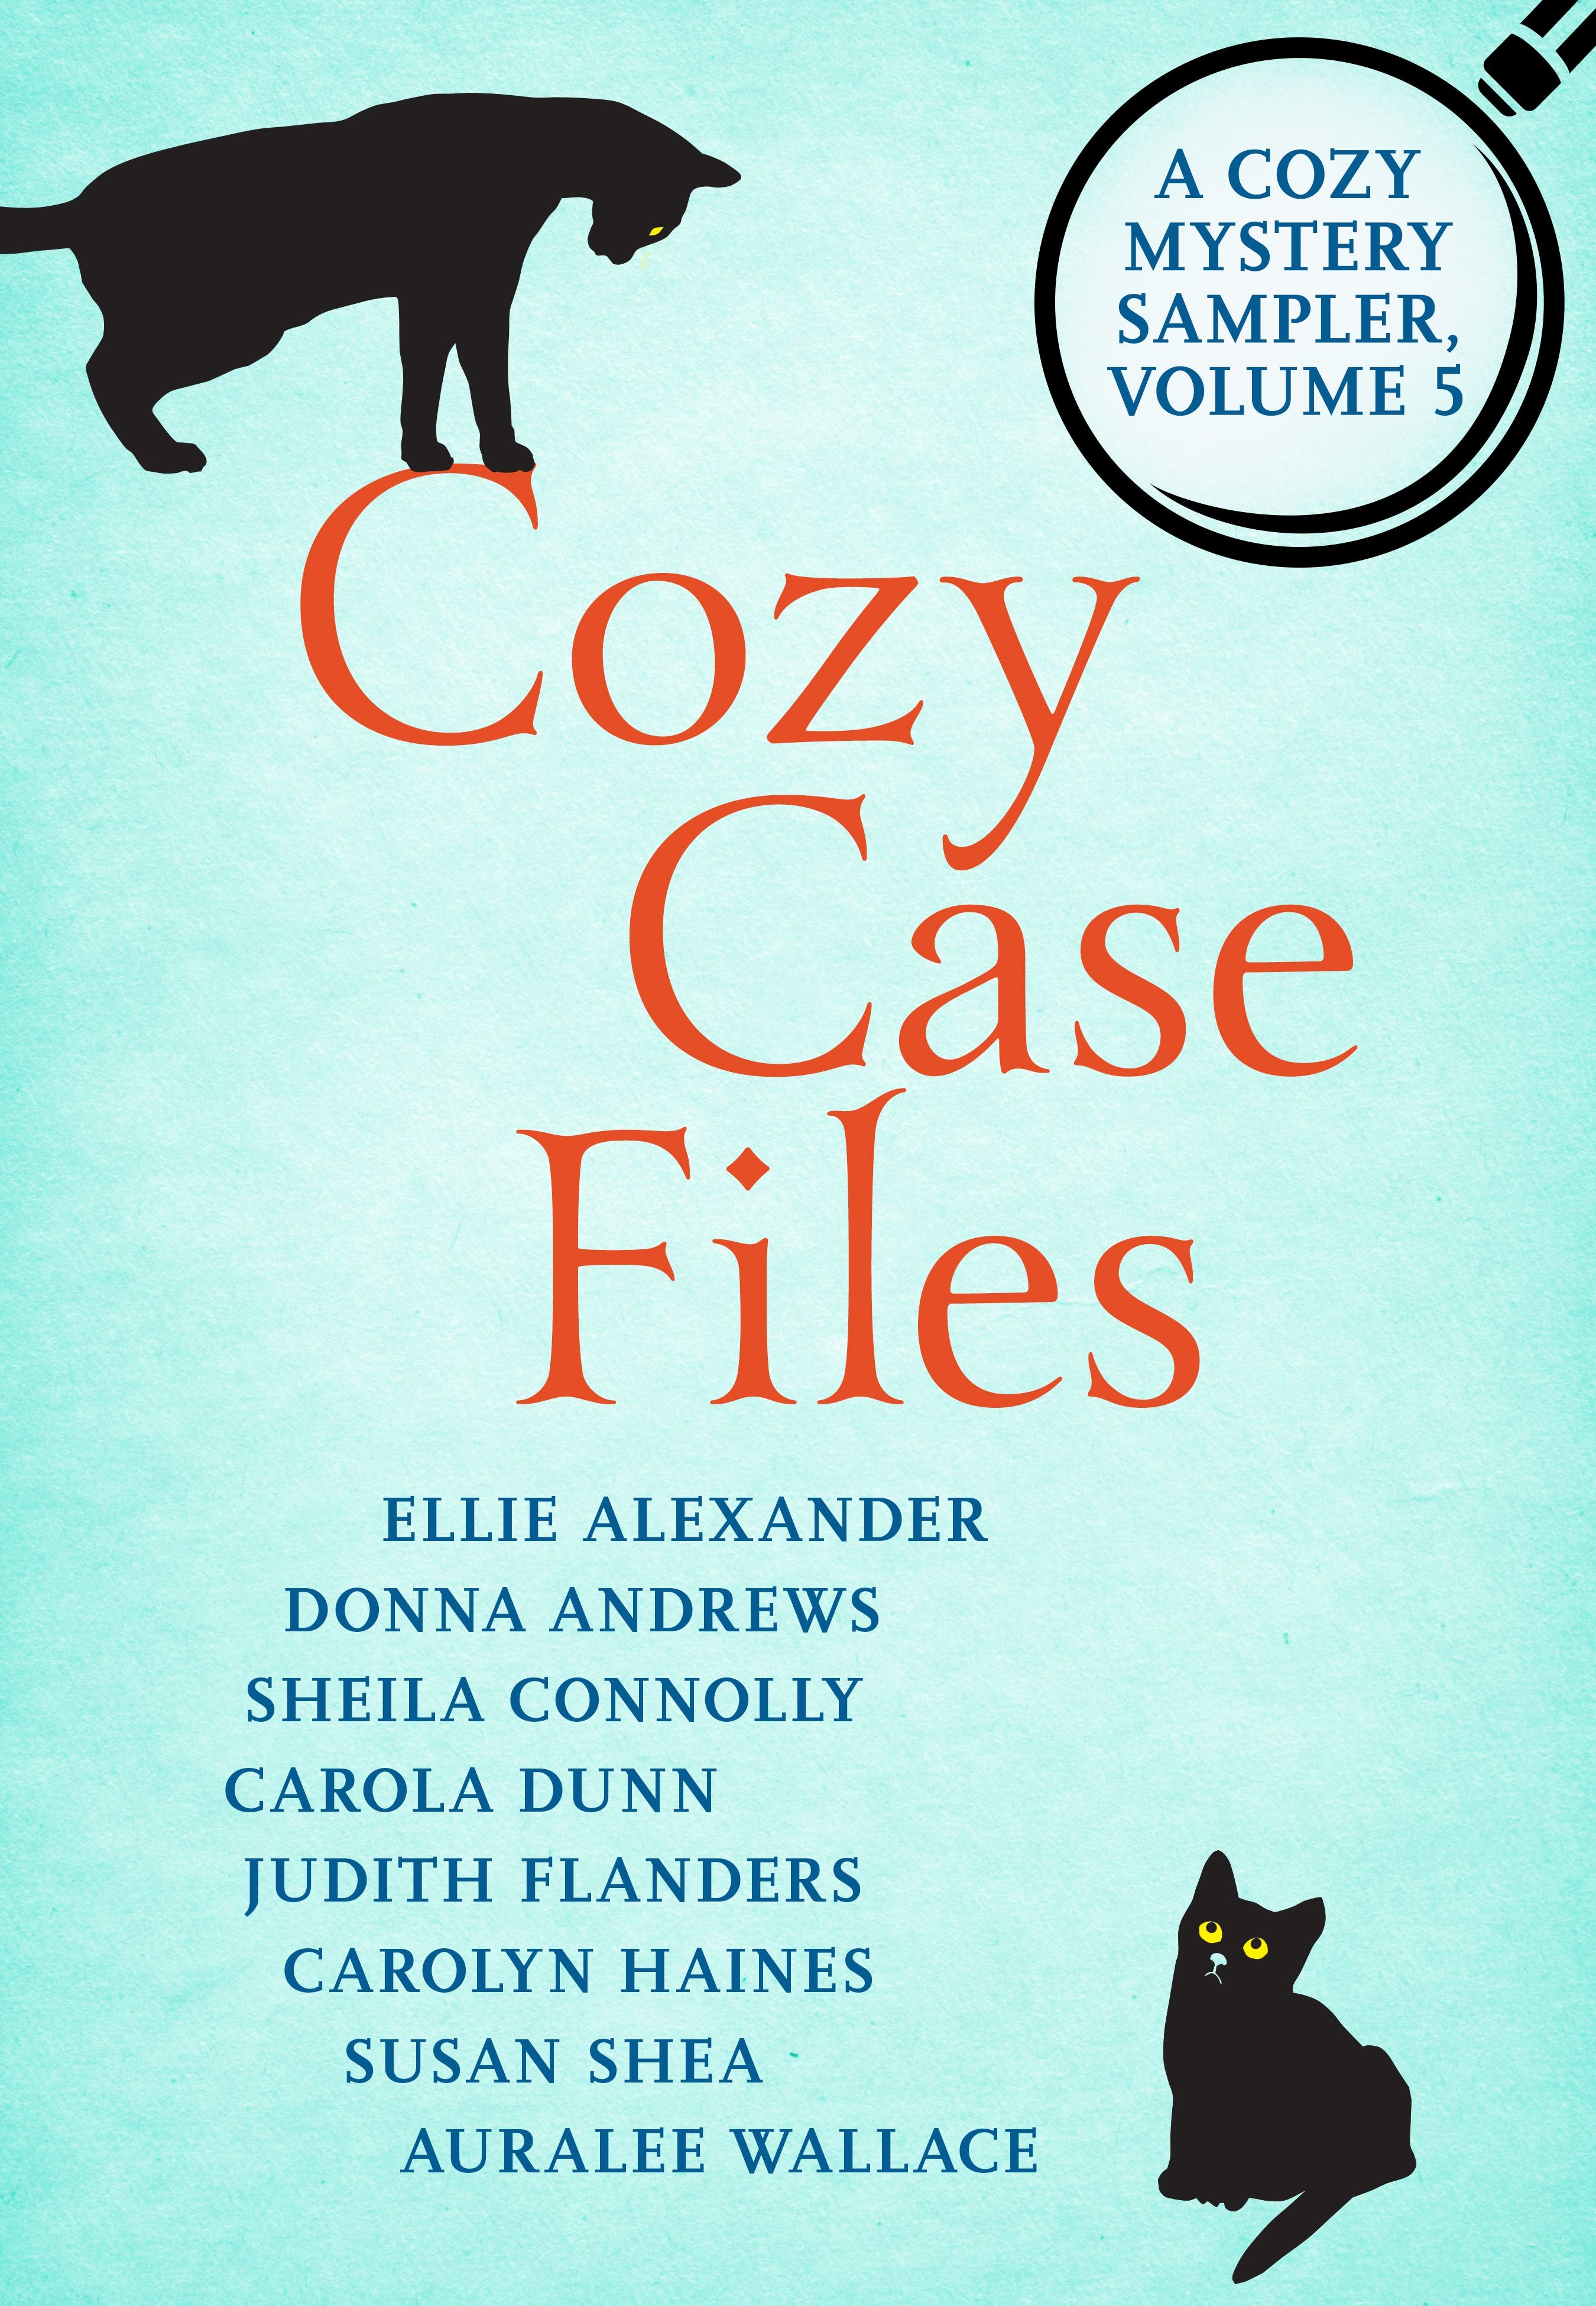 Image of Cozy Case Files: A Cozy Mystery Sampler, Volume 5